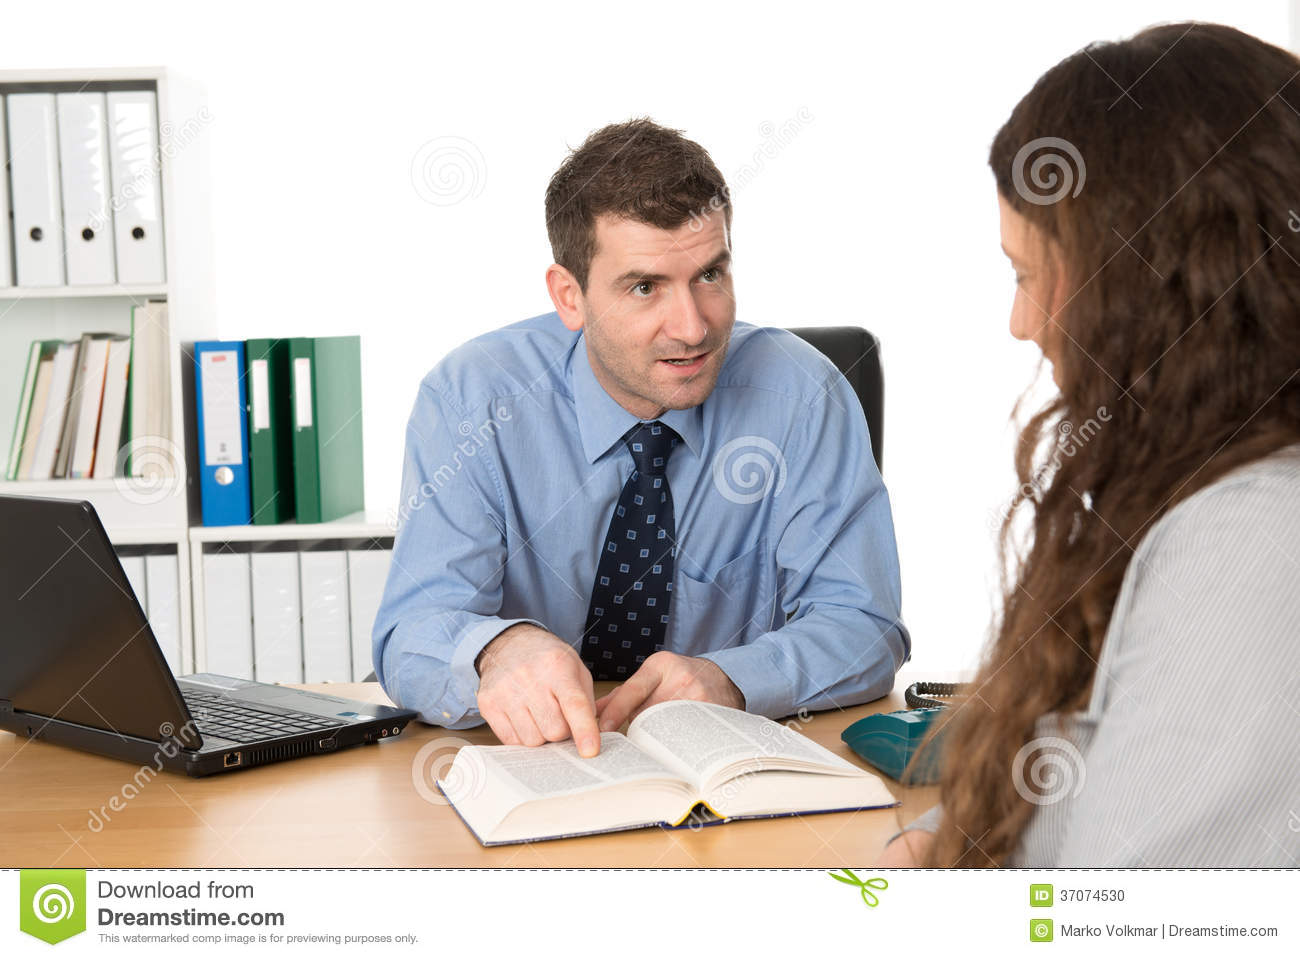 Counselor interview